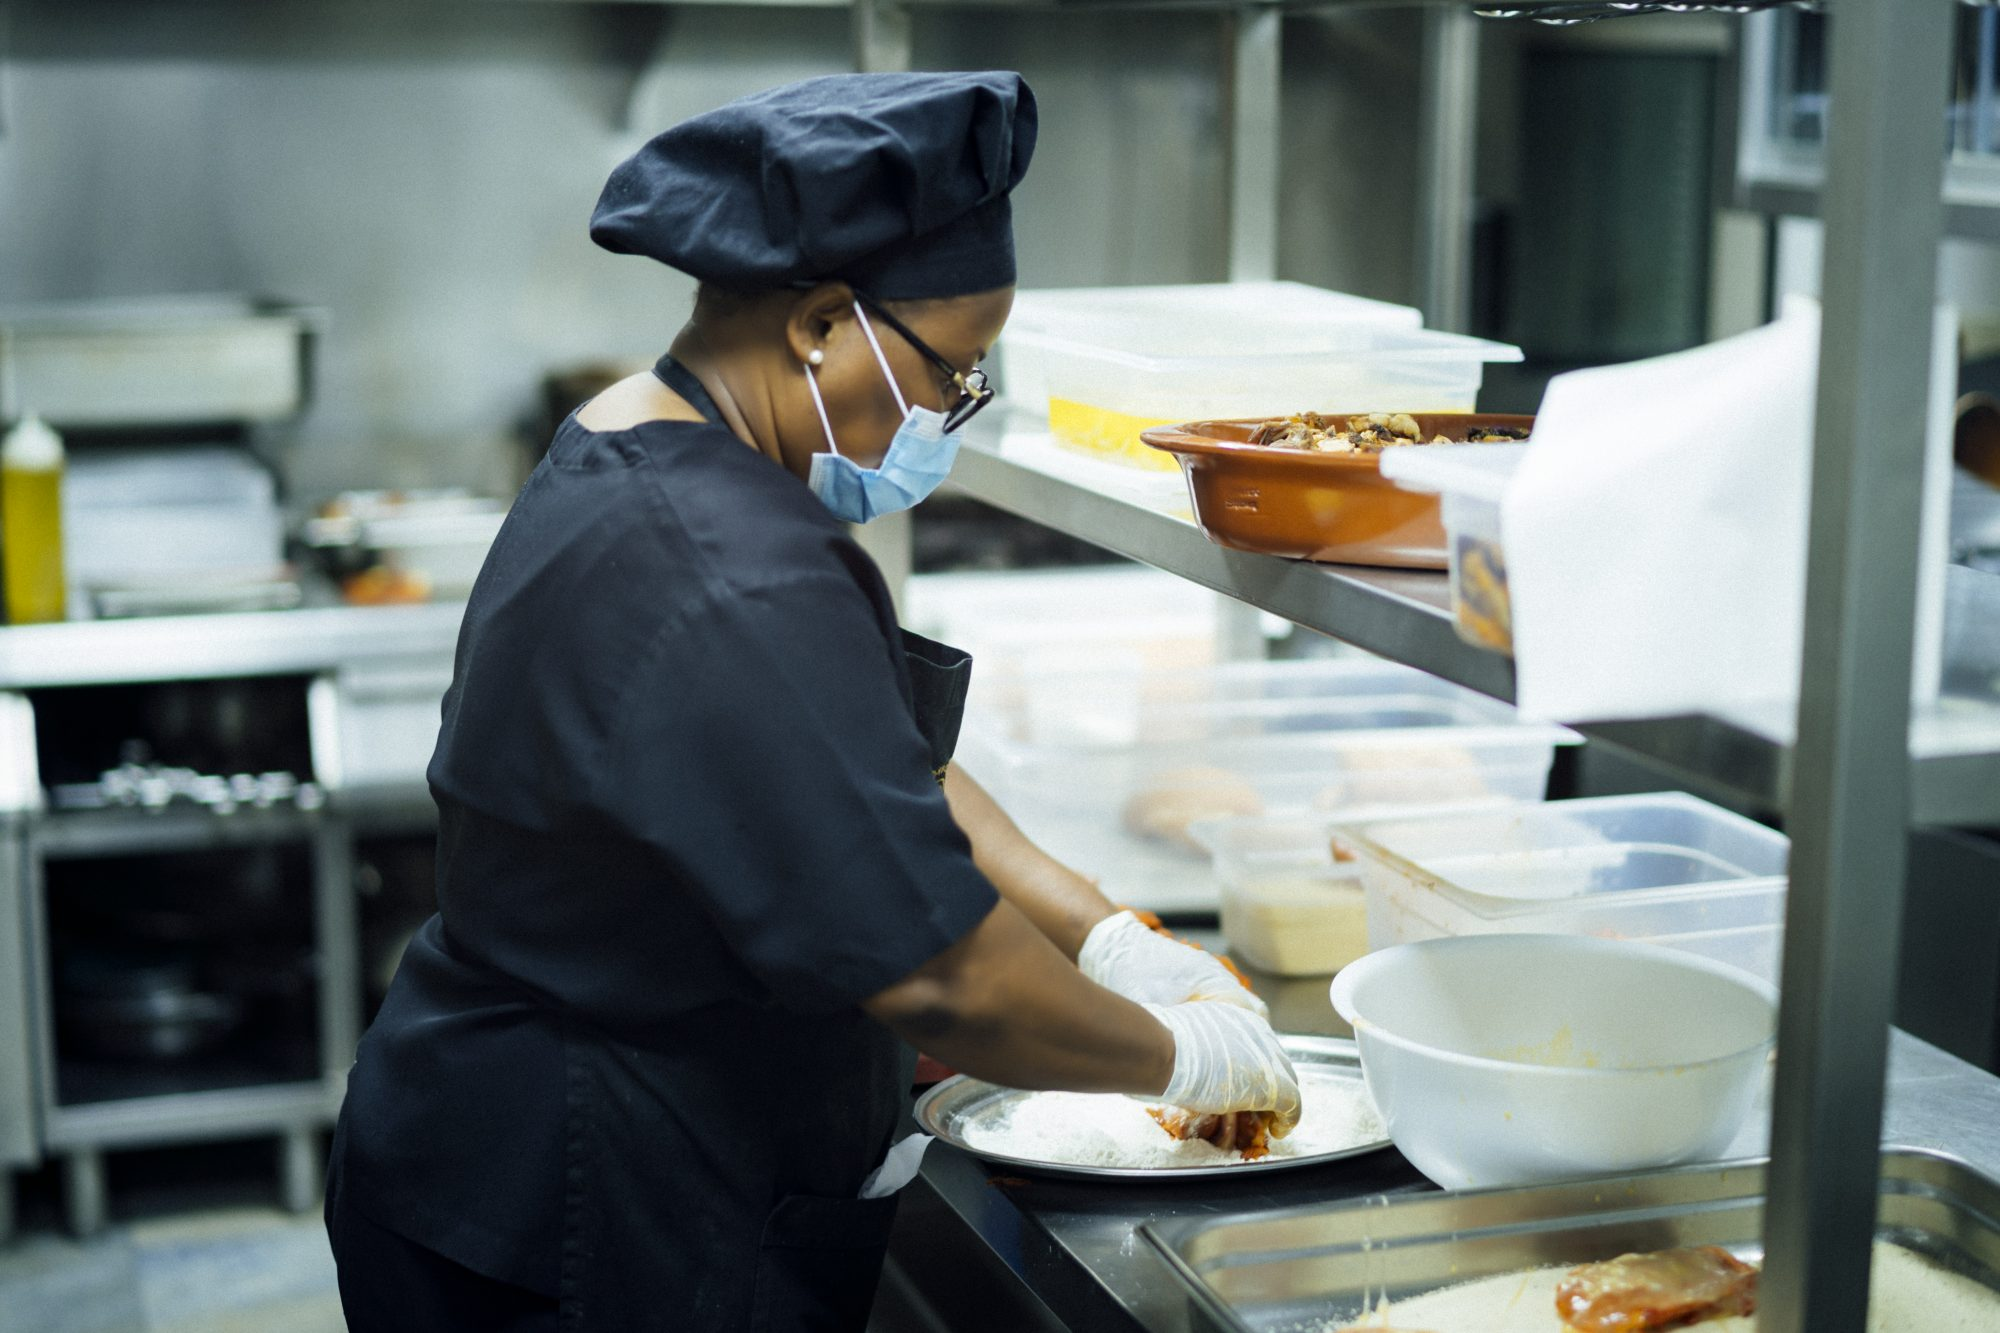 solidarity chef preparing food for those most in need due to the economic crisis